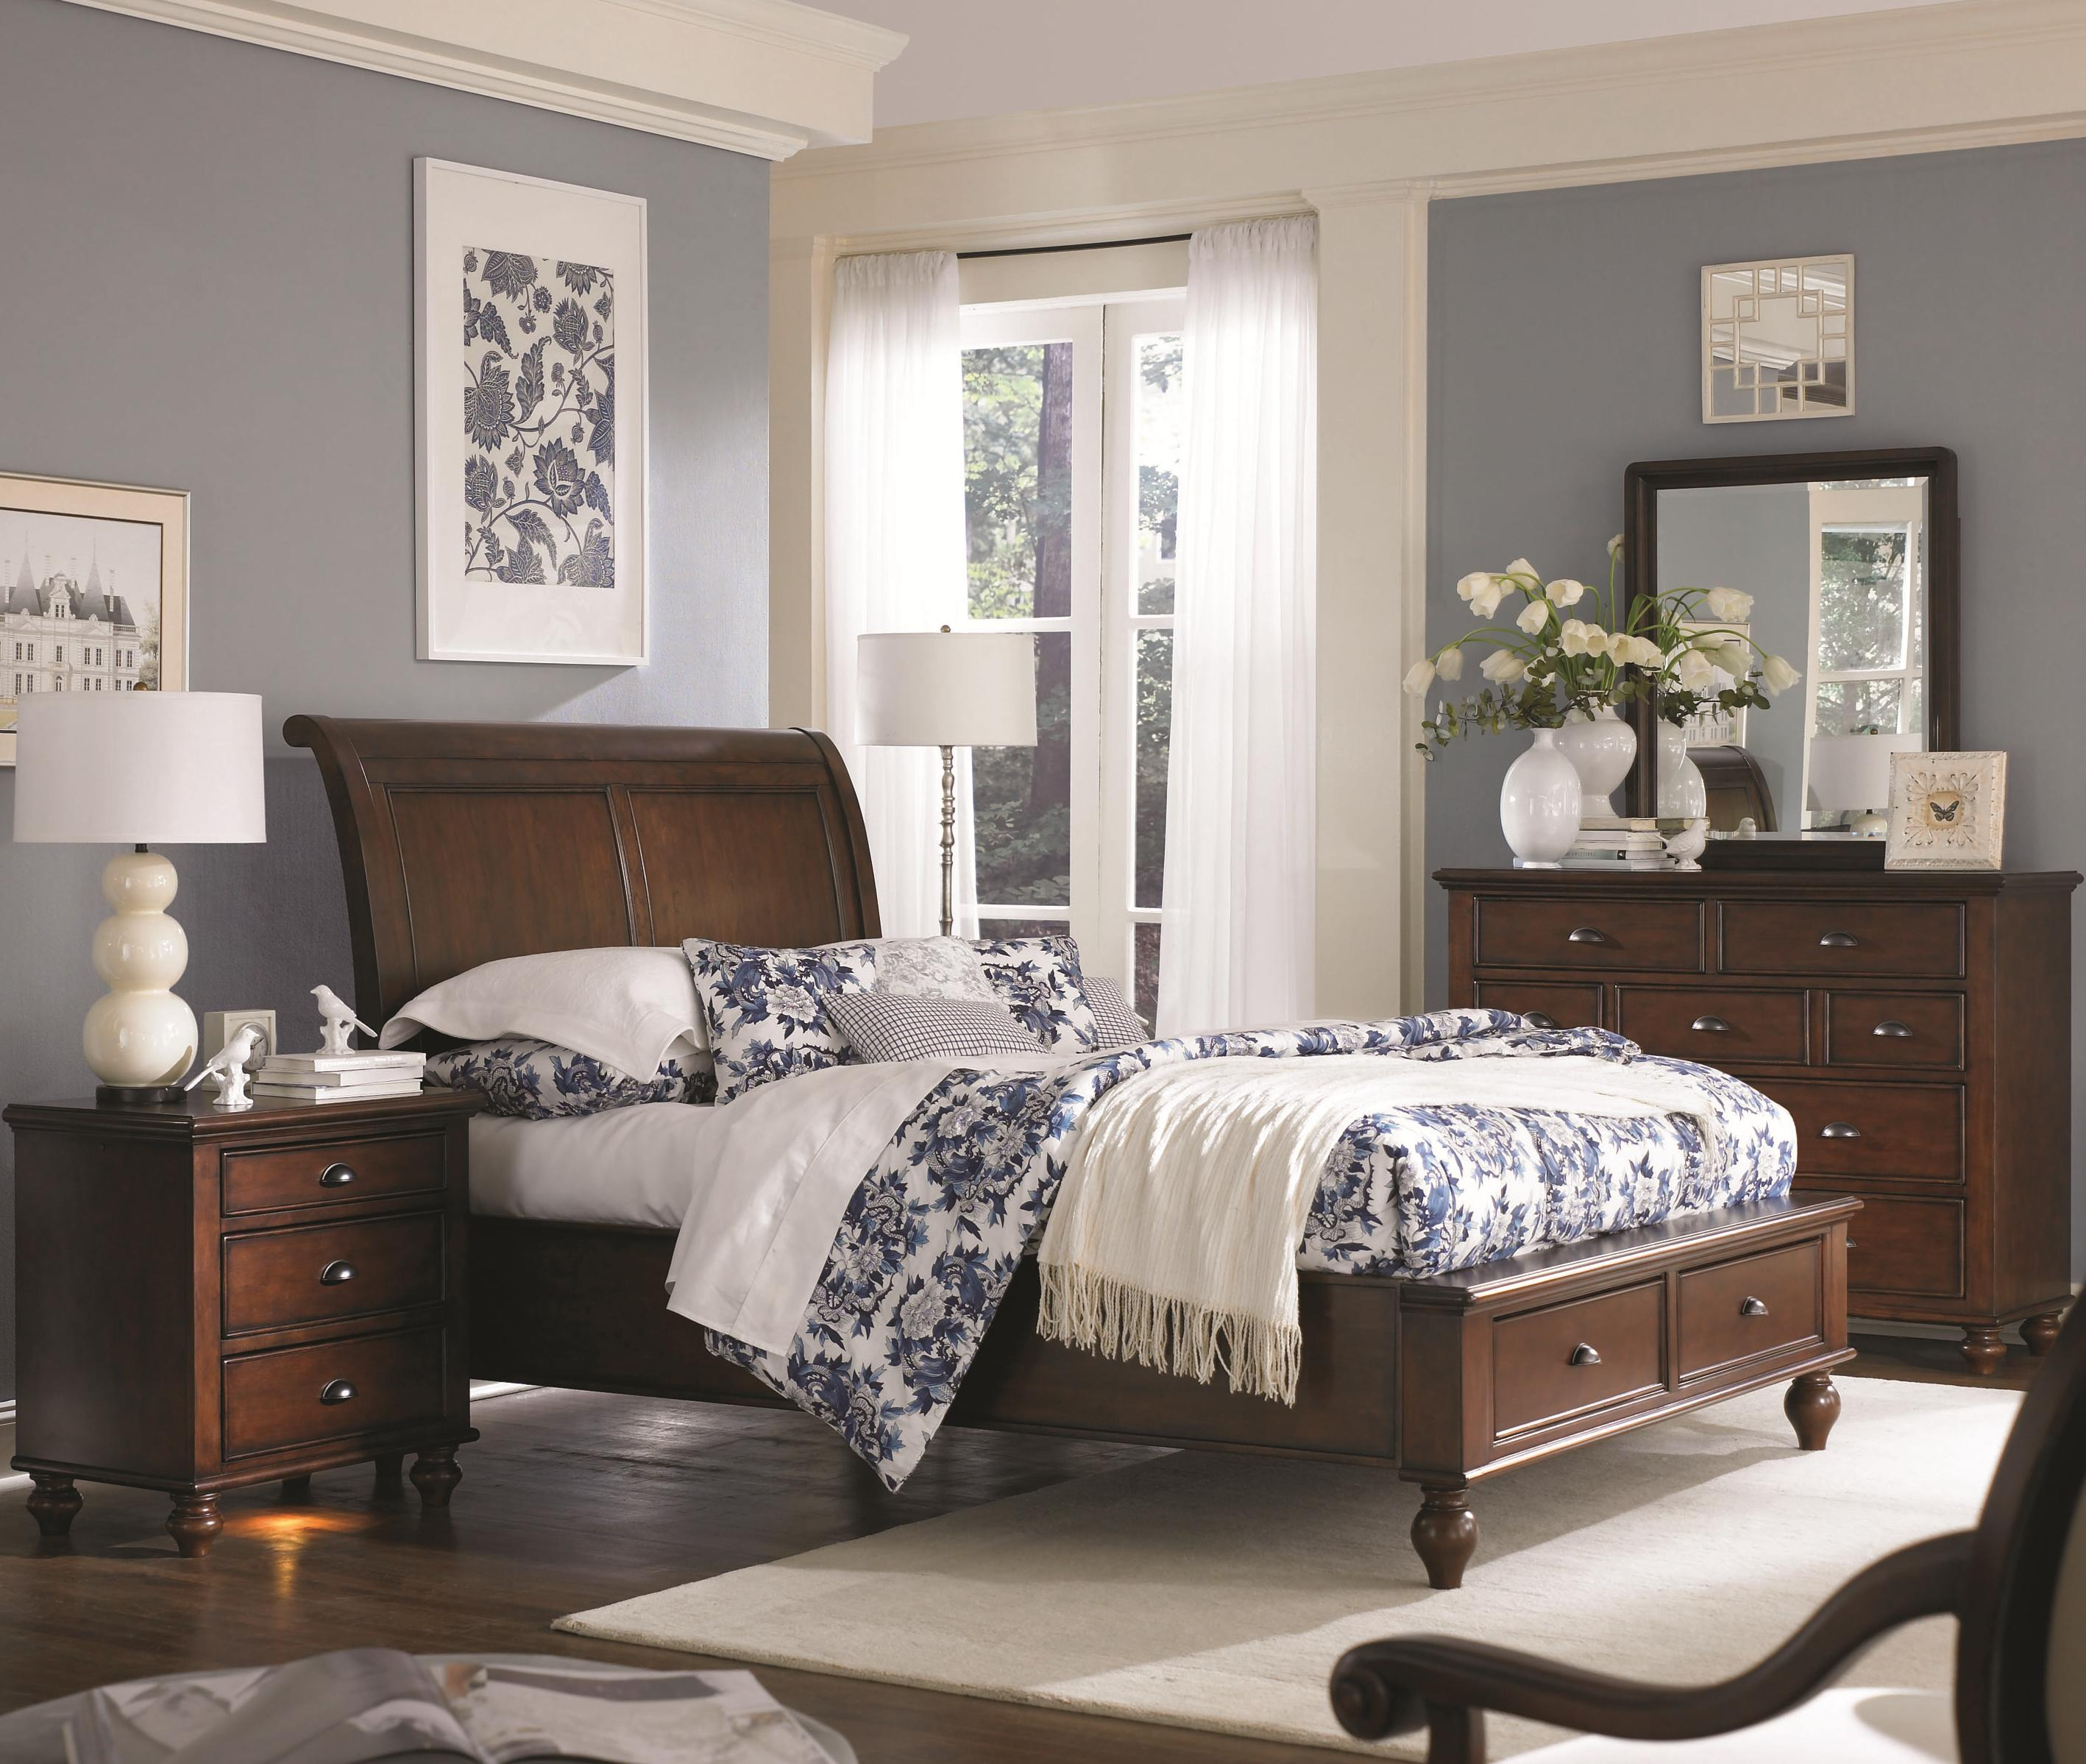 Aspenhome Madison King Bedroom Group - Item Number: BRH K Bedroom Group 1